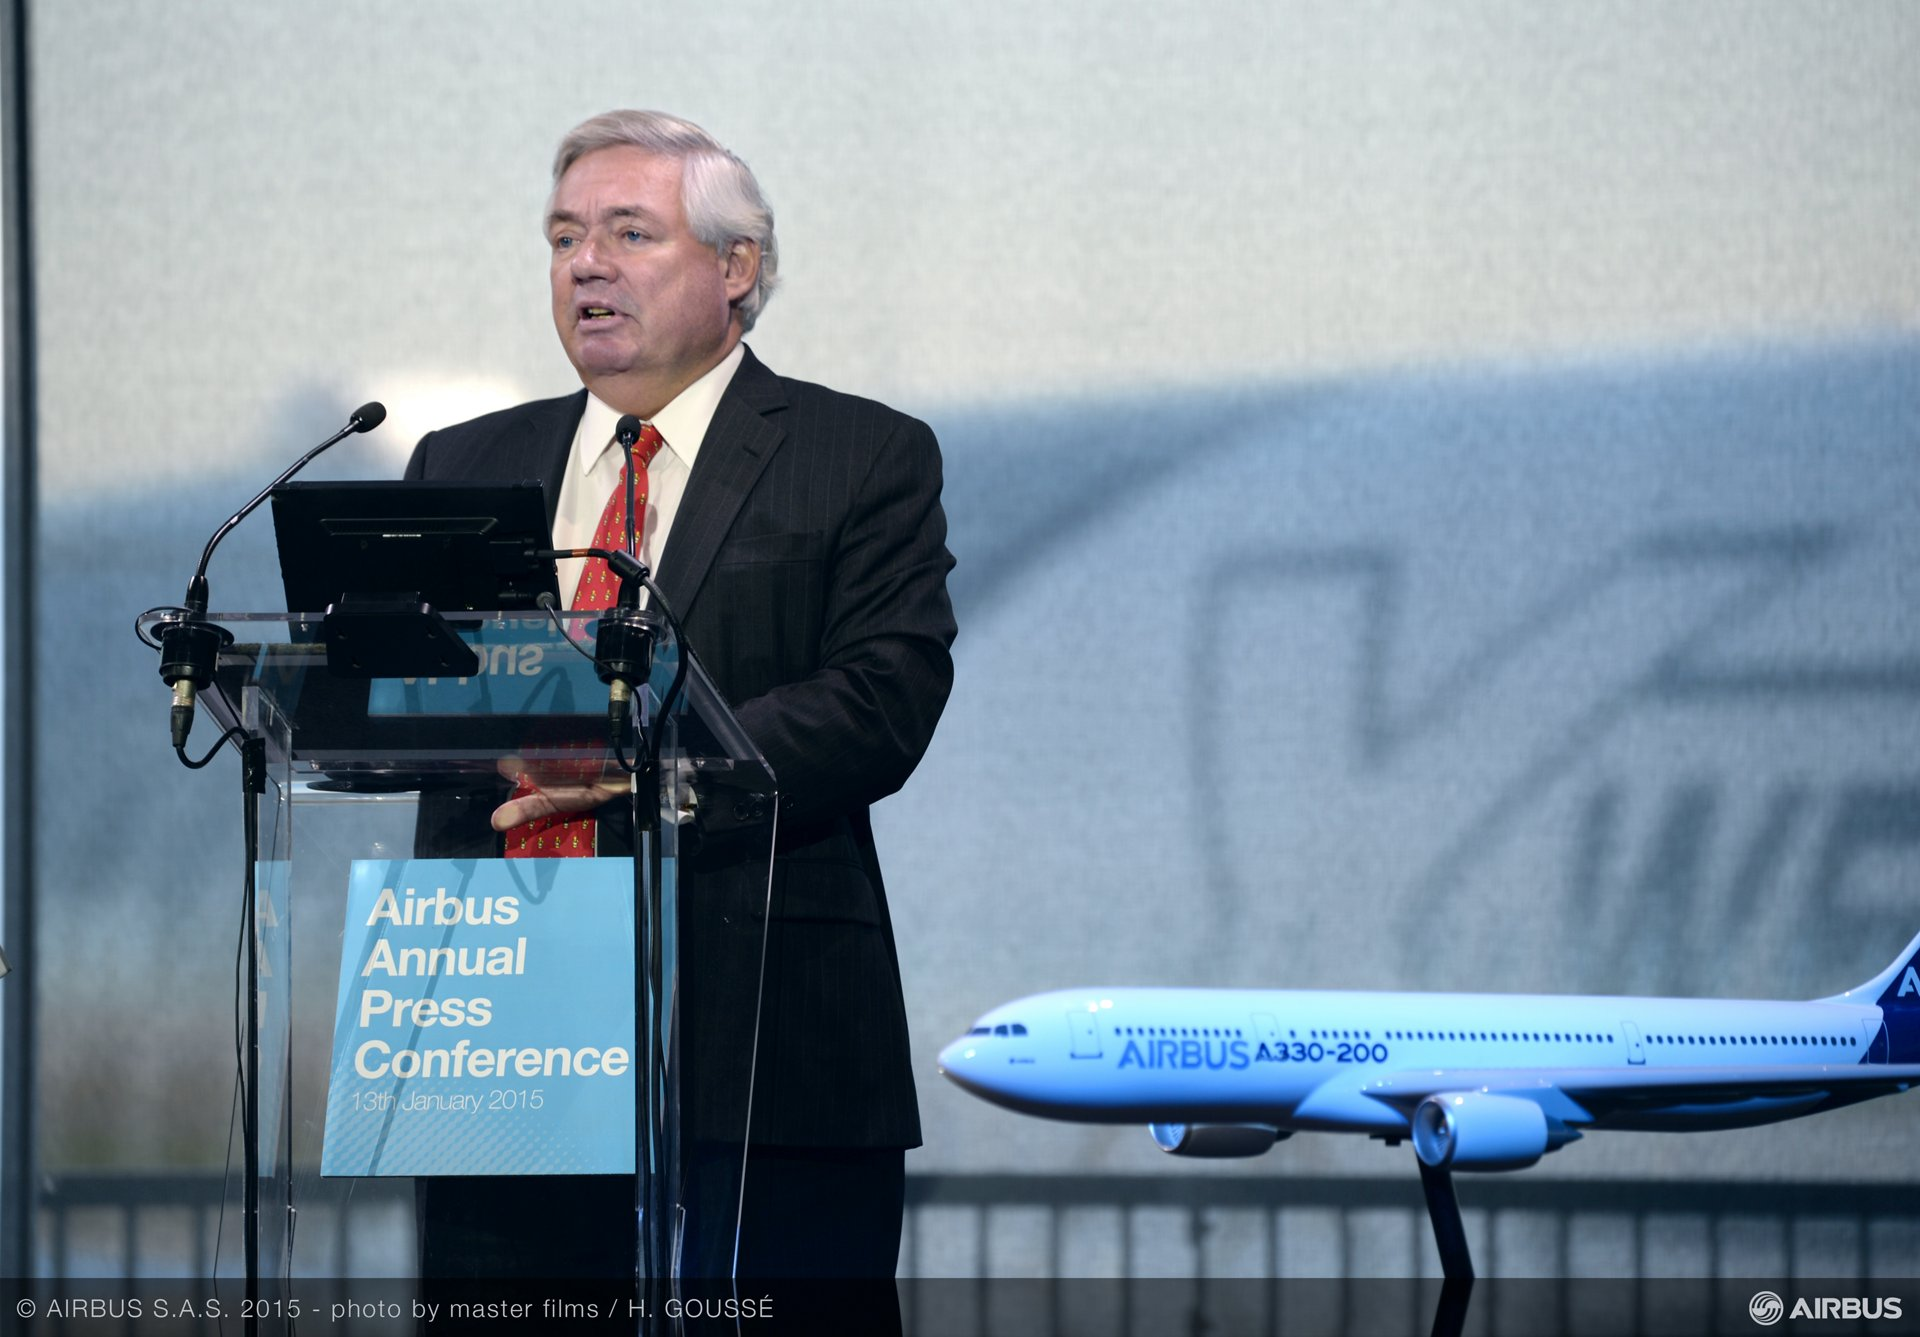 Airbus 2015 annual press conference_Leahy 1